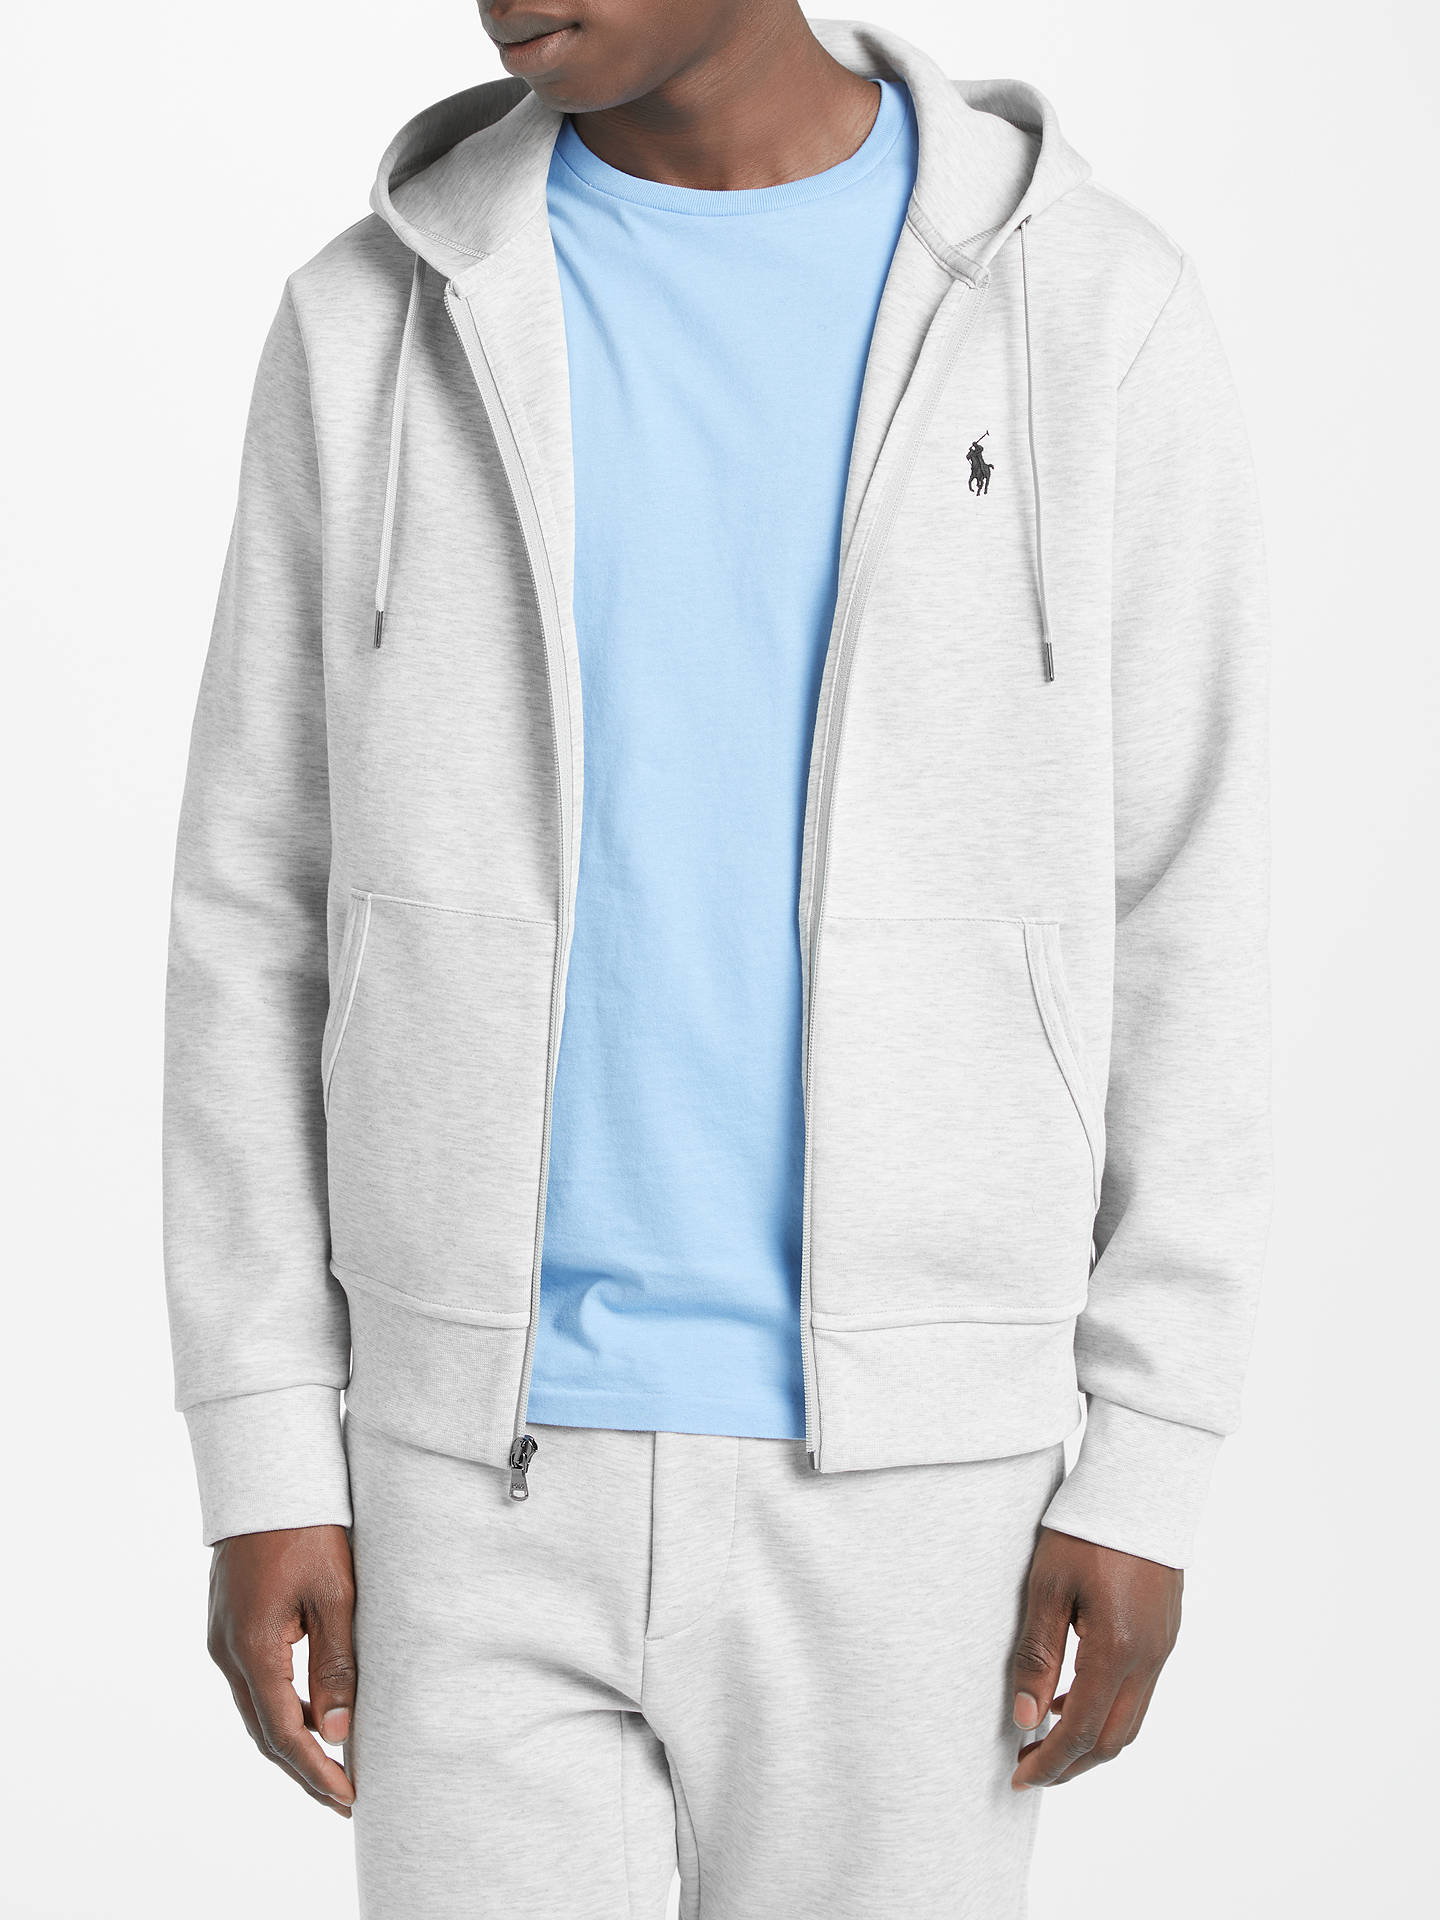 55e4e6412 Buy Polo Ralph Lauren Long Sleeve Full Zip Hoodie, Light Sport Heather, S  Online ...